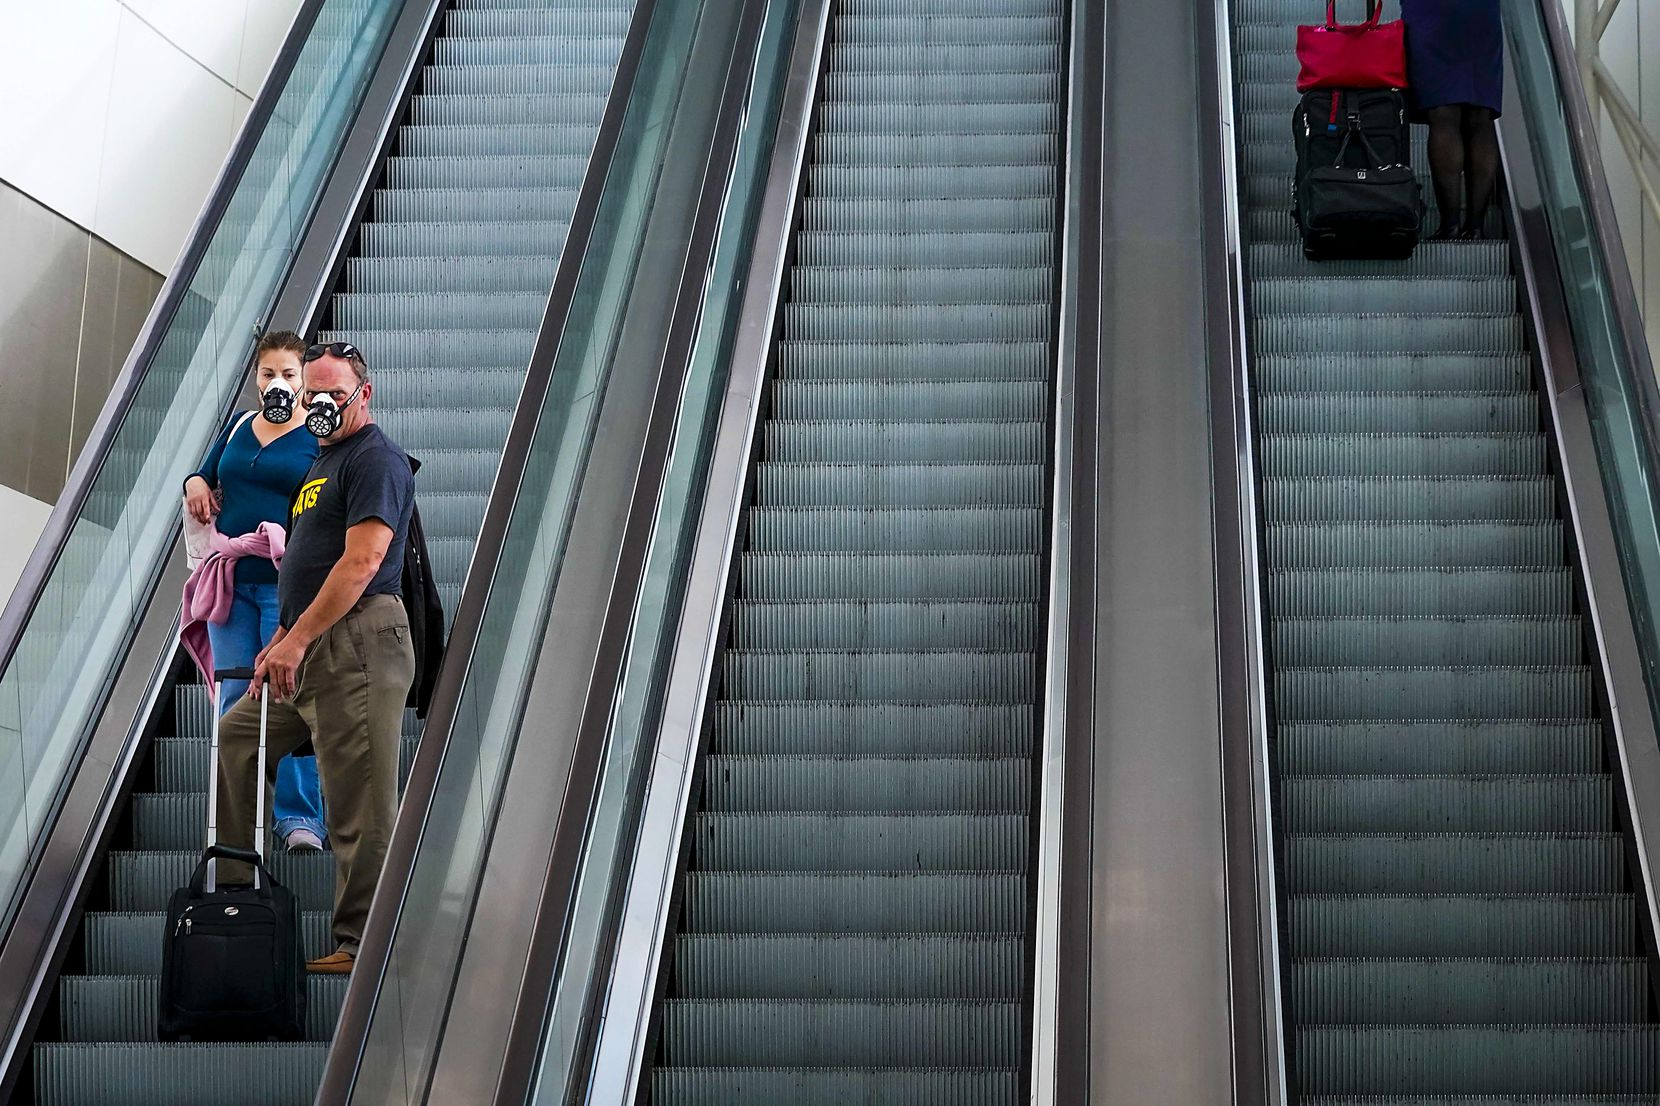 Passengers wearing face masks due to the new coronavirus rode an escalator at DFW International Airport Terminal B on March 20, 2020. For the day, TSA reported 593,167 travelers nationwide, down from 2,559,307 on the same date in 2019.